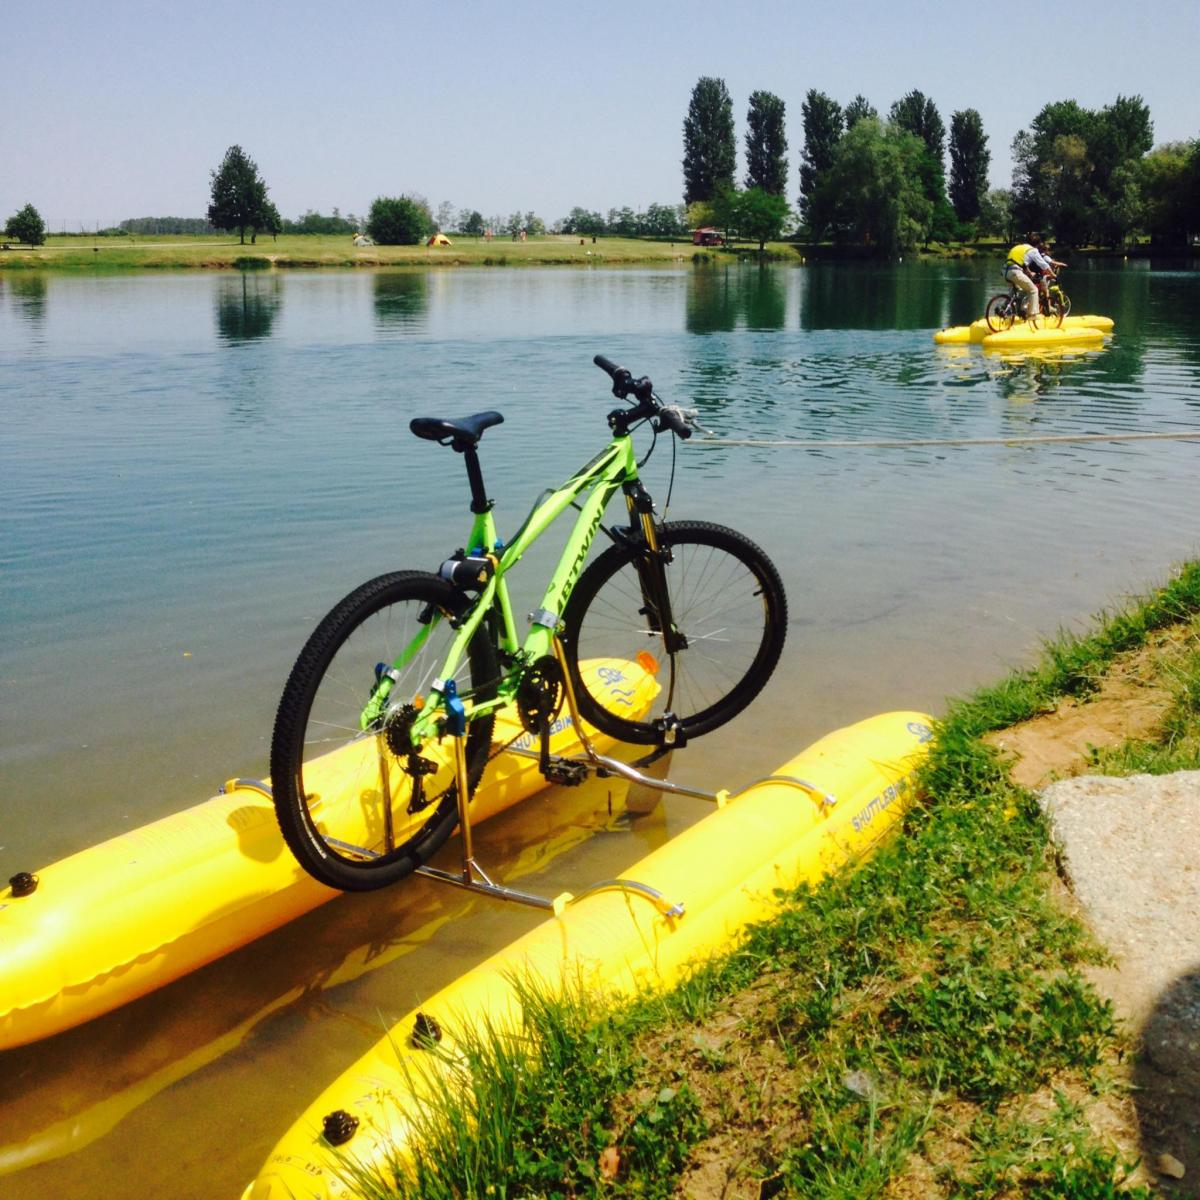 Shuttle Bike Bicycle Pontoon Boat Kit Turns Your Bike into a floating boat